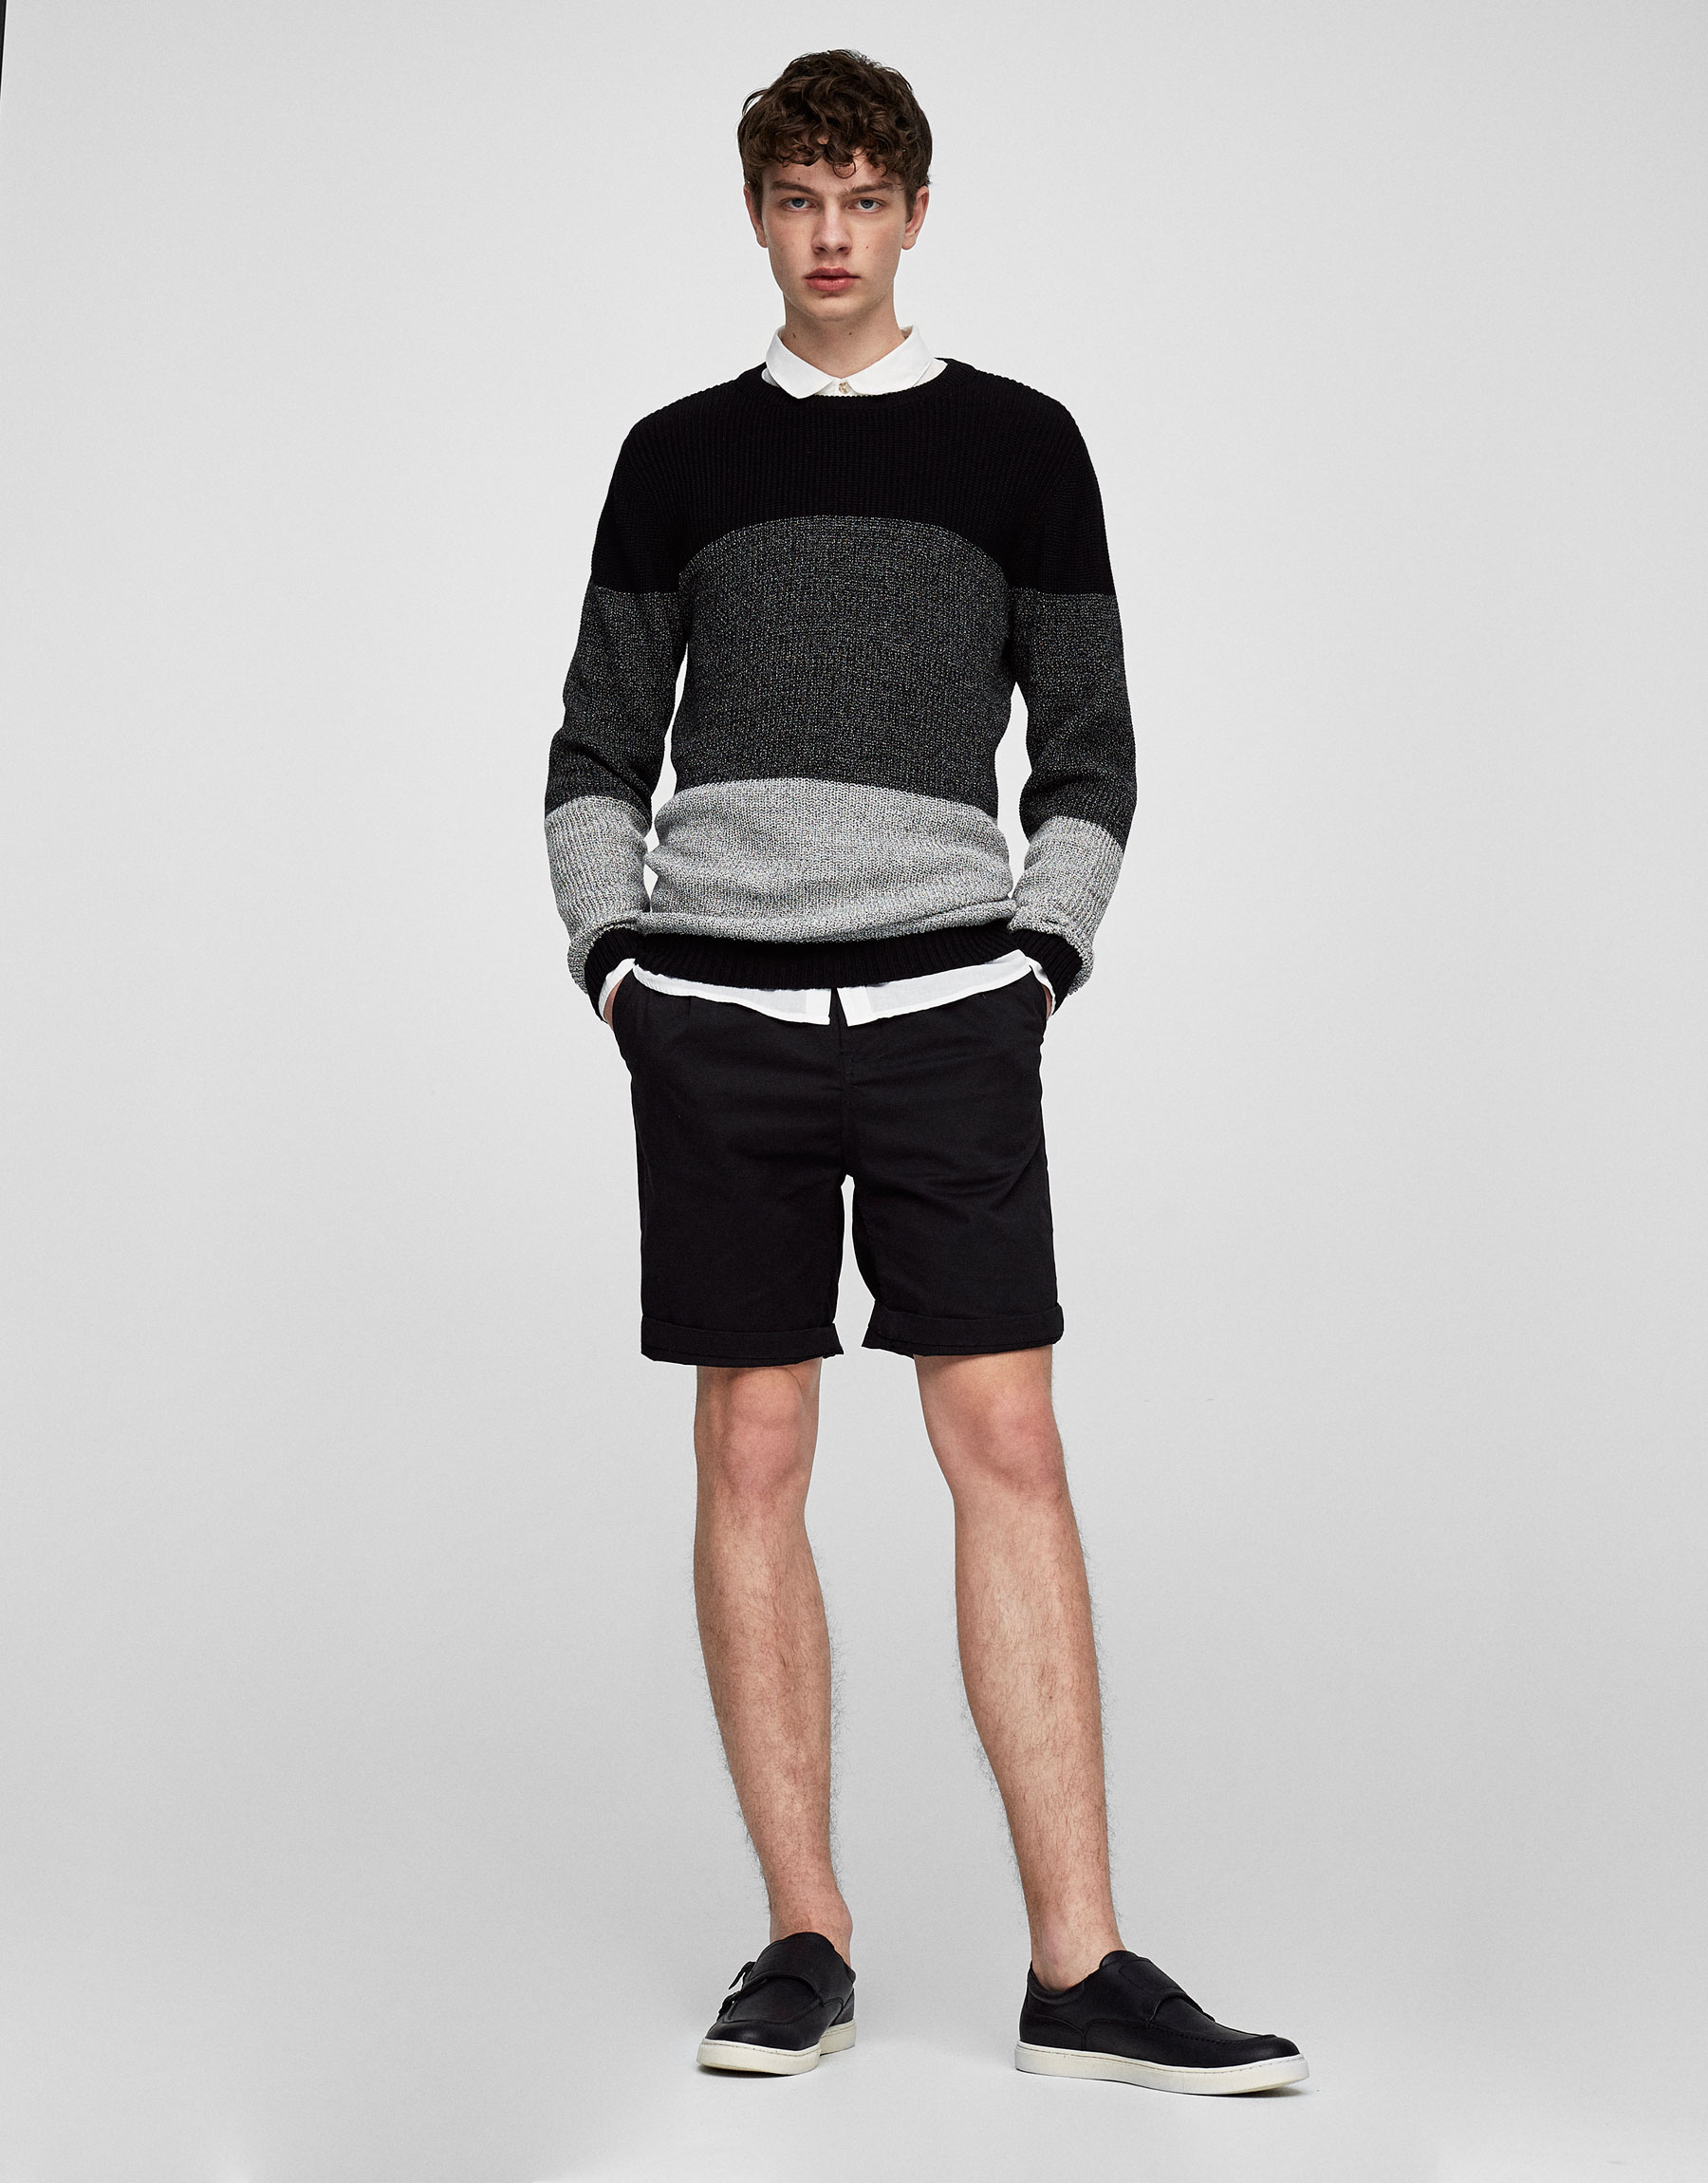 Worn-effect banded sweater with cuff detail